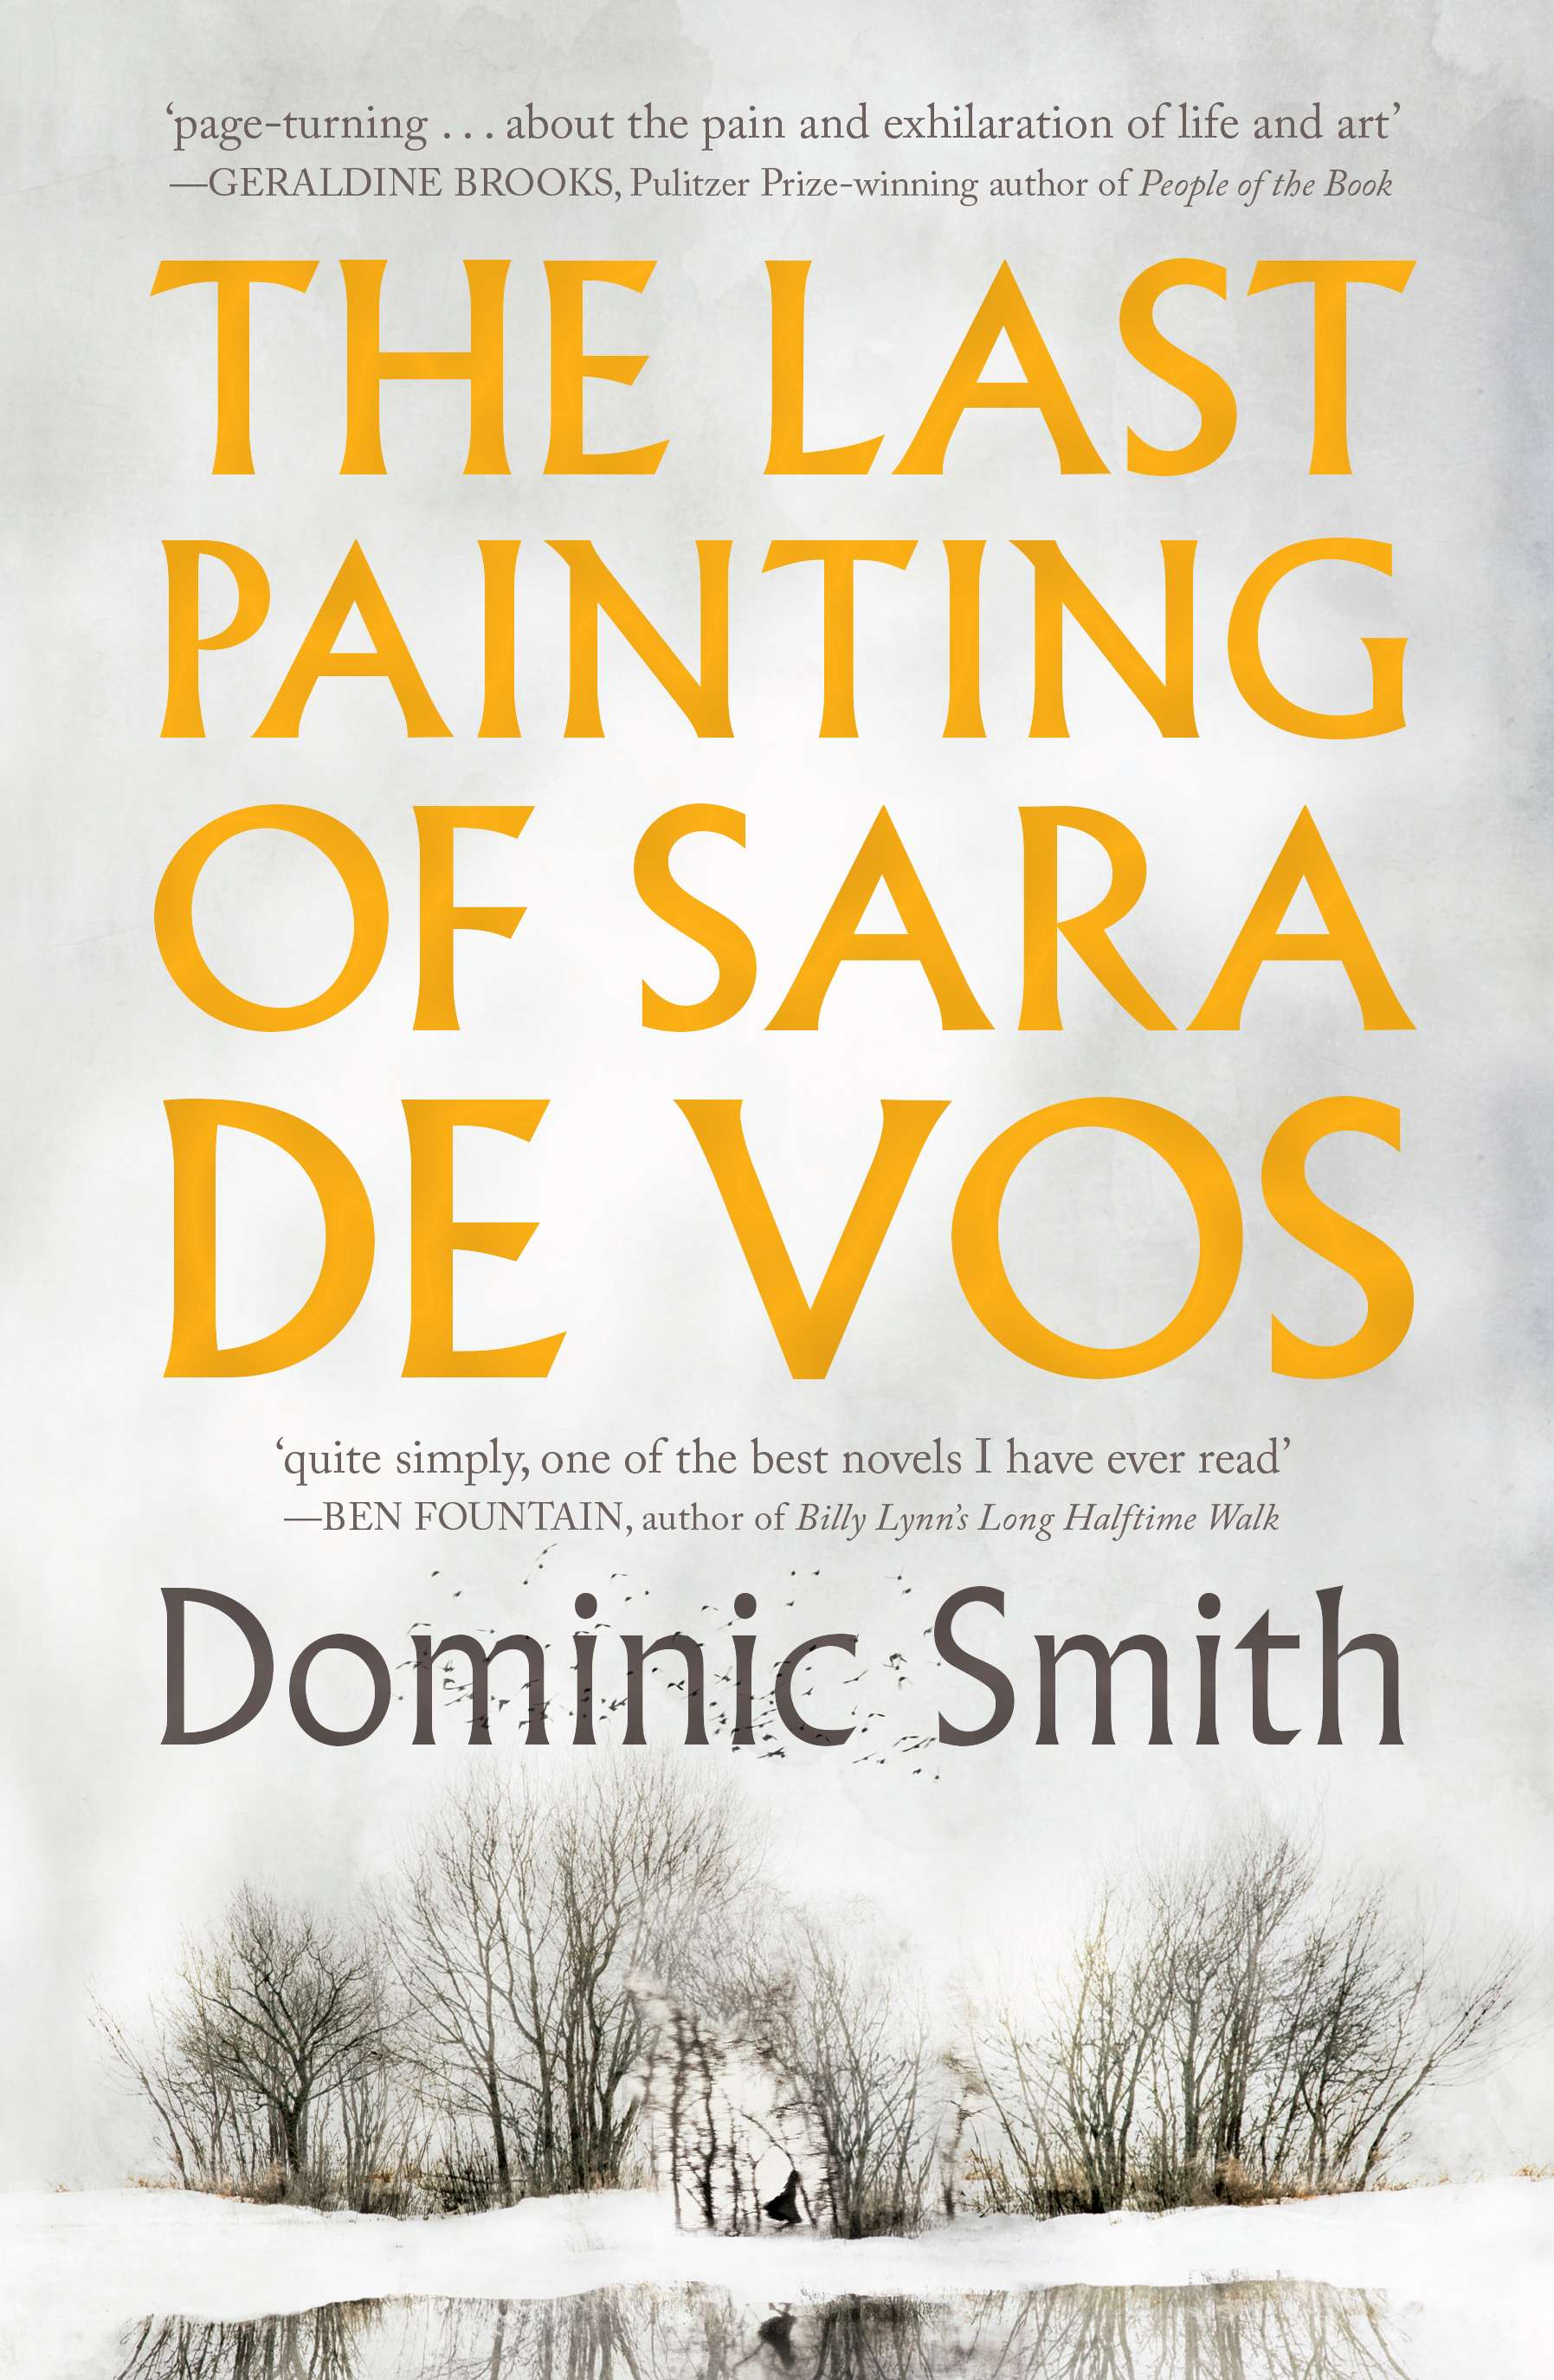 The Last Painting of Sara de Vos by Dominic Smith book cover featuring a snowy landscape with sparse trees, a white sky